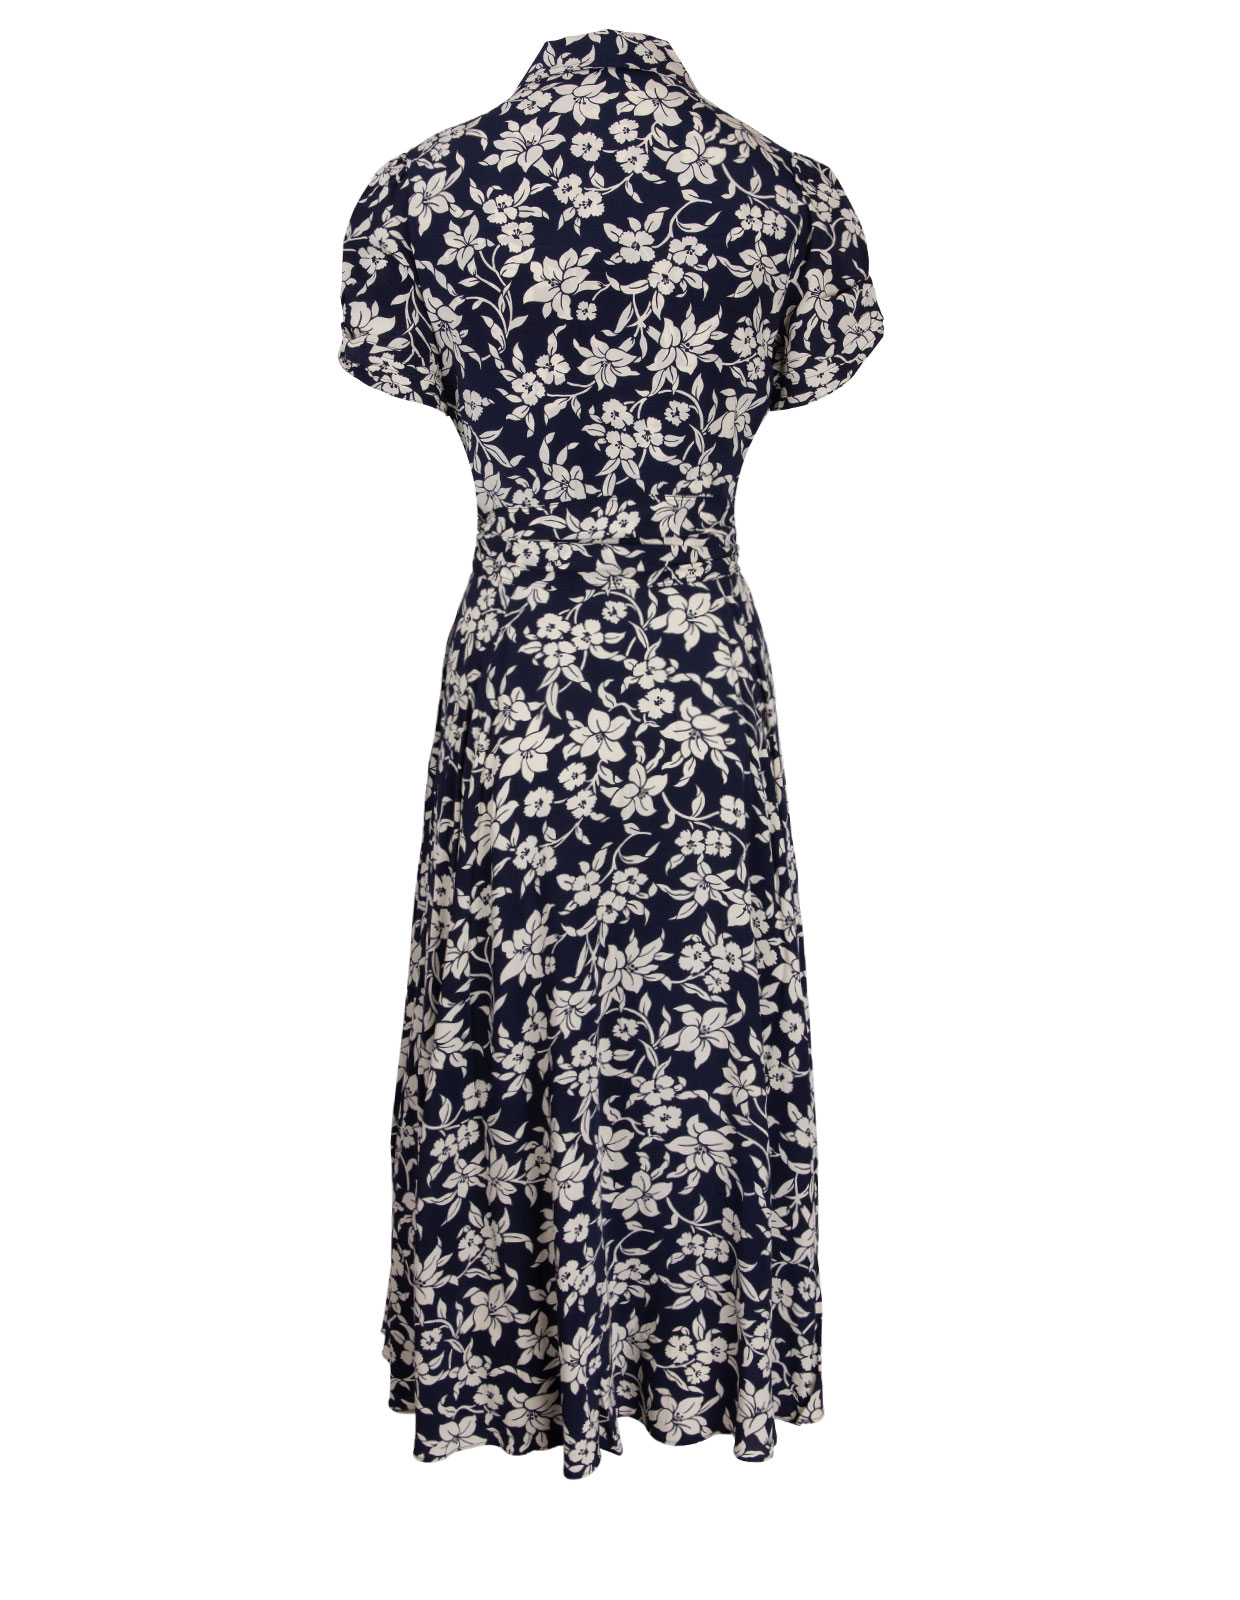 Floral Printed Dress Navy/Cream